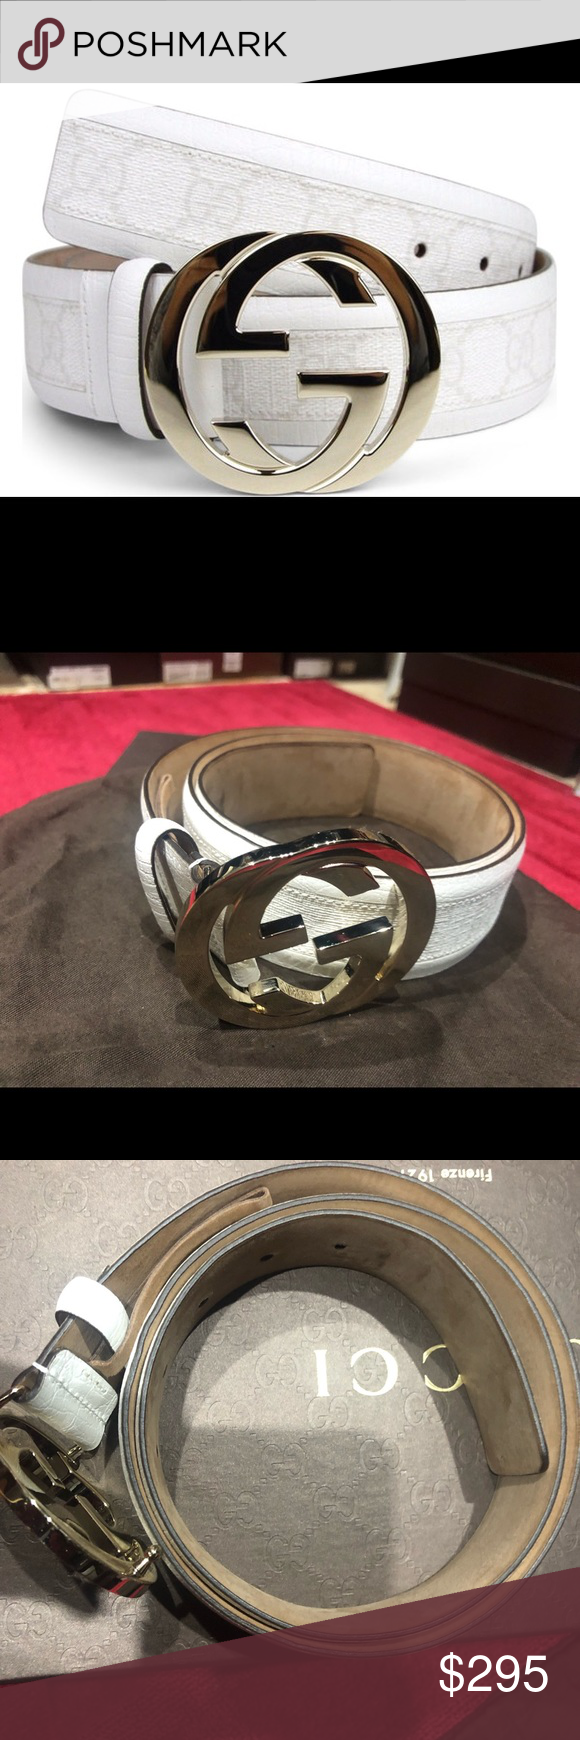 b7c917fda Men's Gucci GG white leather gold buckle belt You are buying brand new  Gucci GG belt